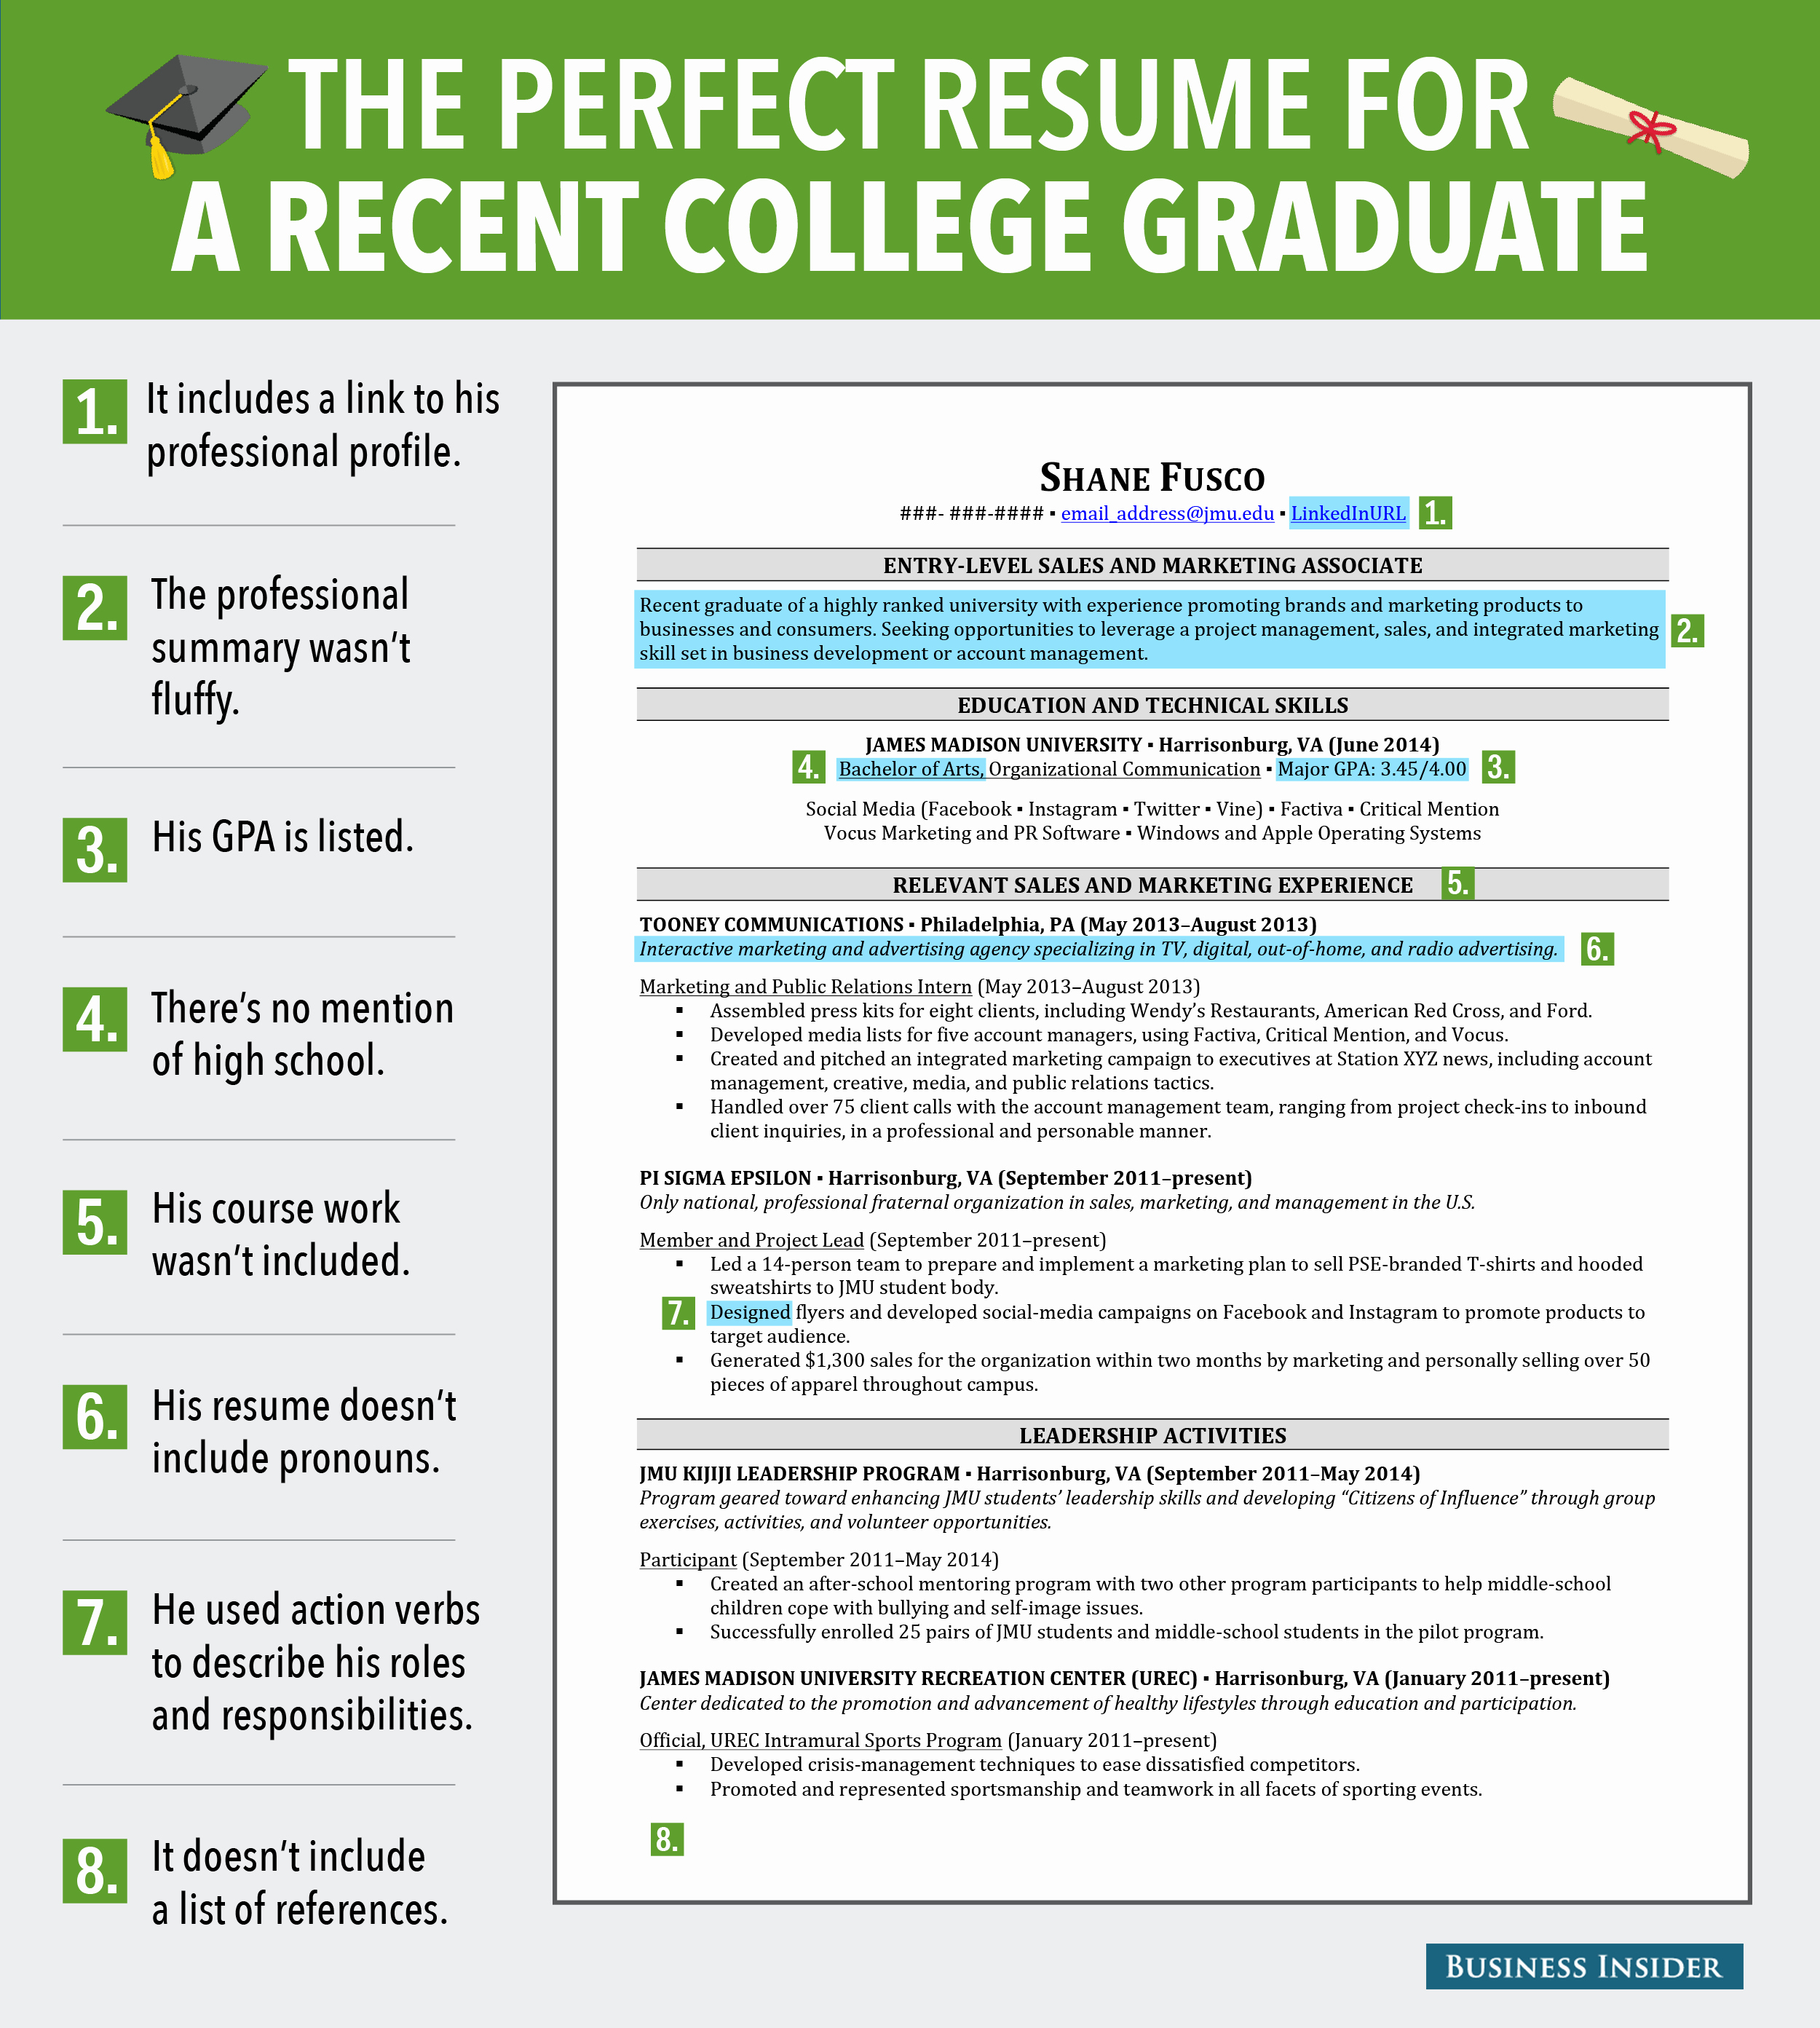 Resume for New College Graduate Lovely Excellent Resume for Recent Grad Business Insider